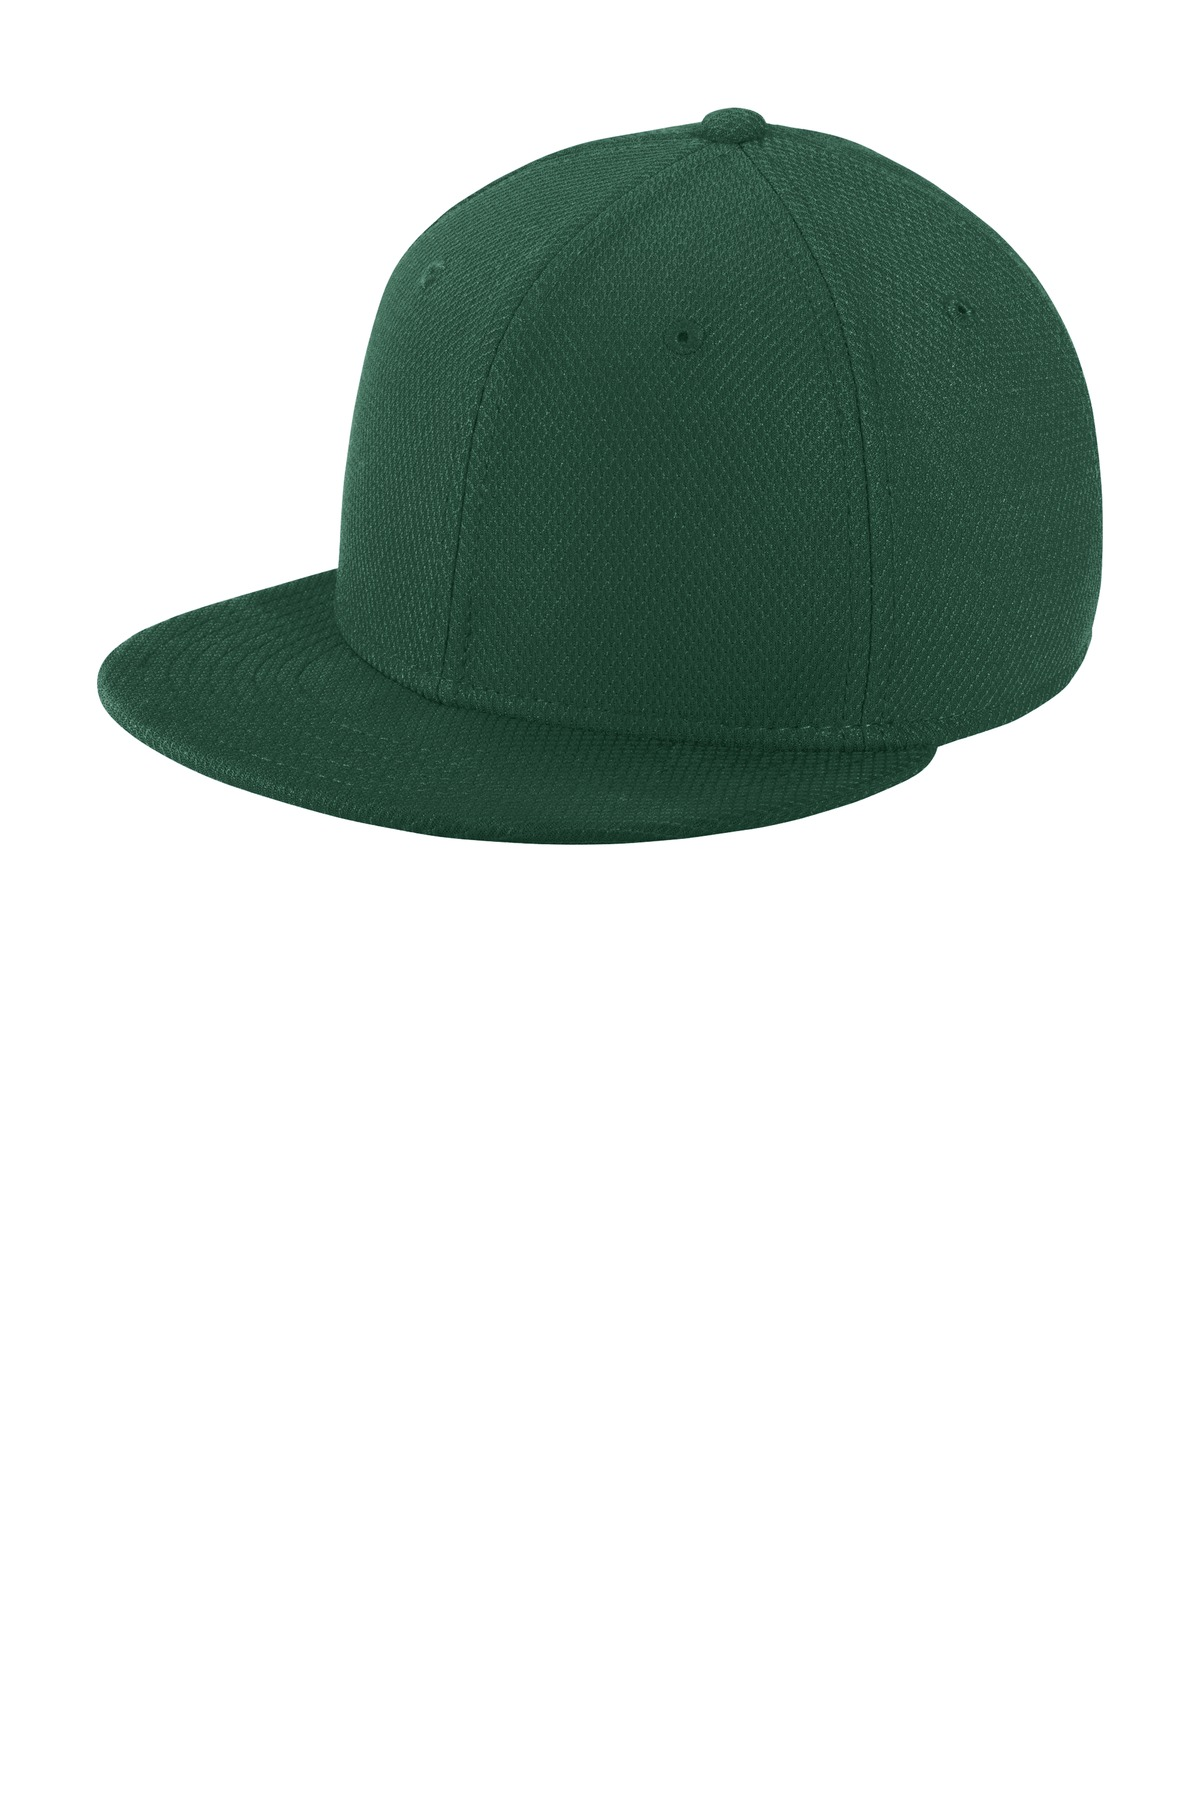 New Era  ®  Youth Original Fit Diamond Era Flat Bill Snapback Cap. NE304 - Dark Green